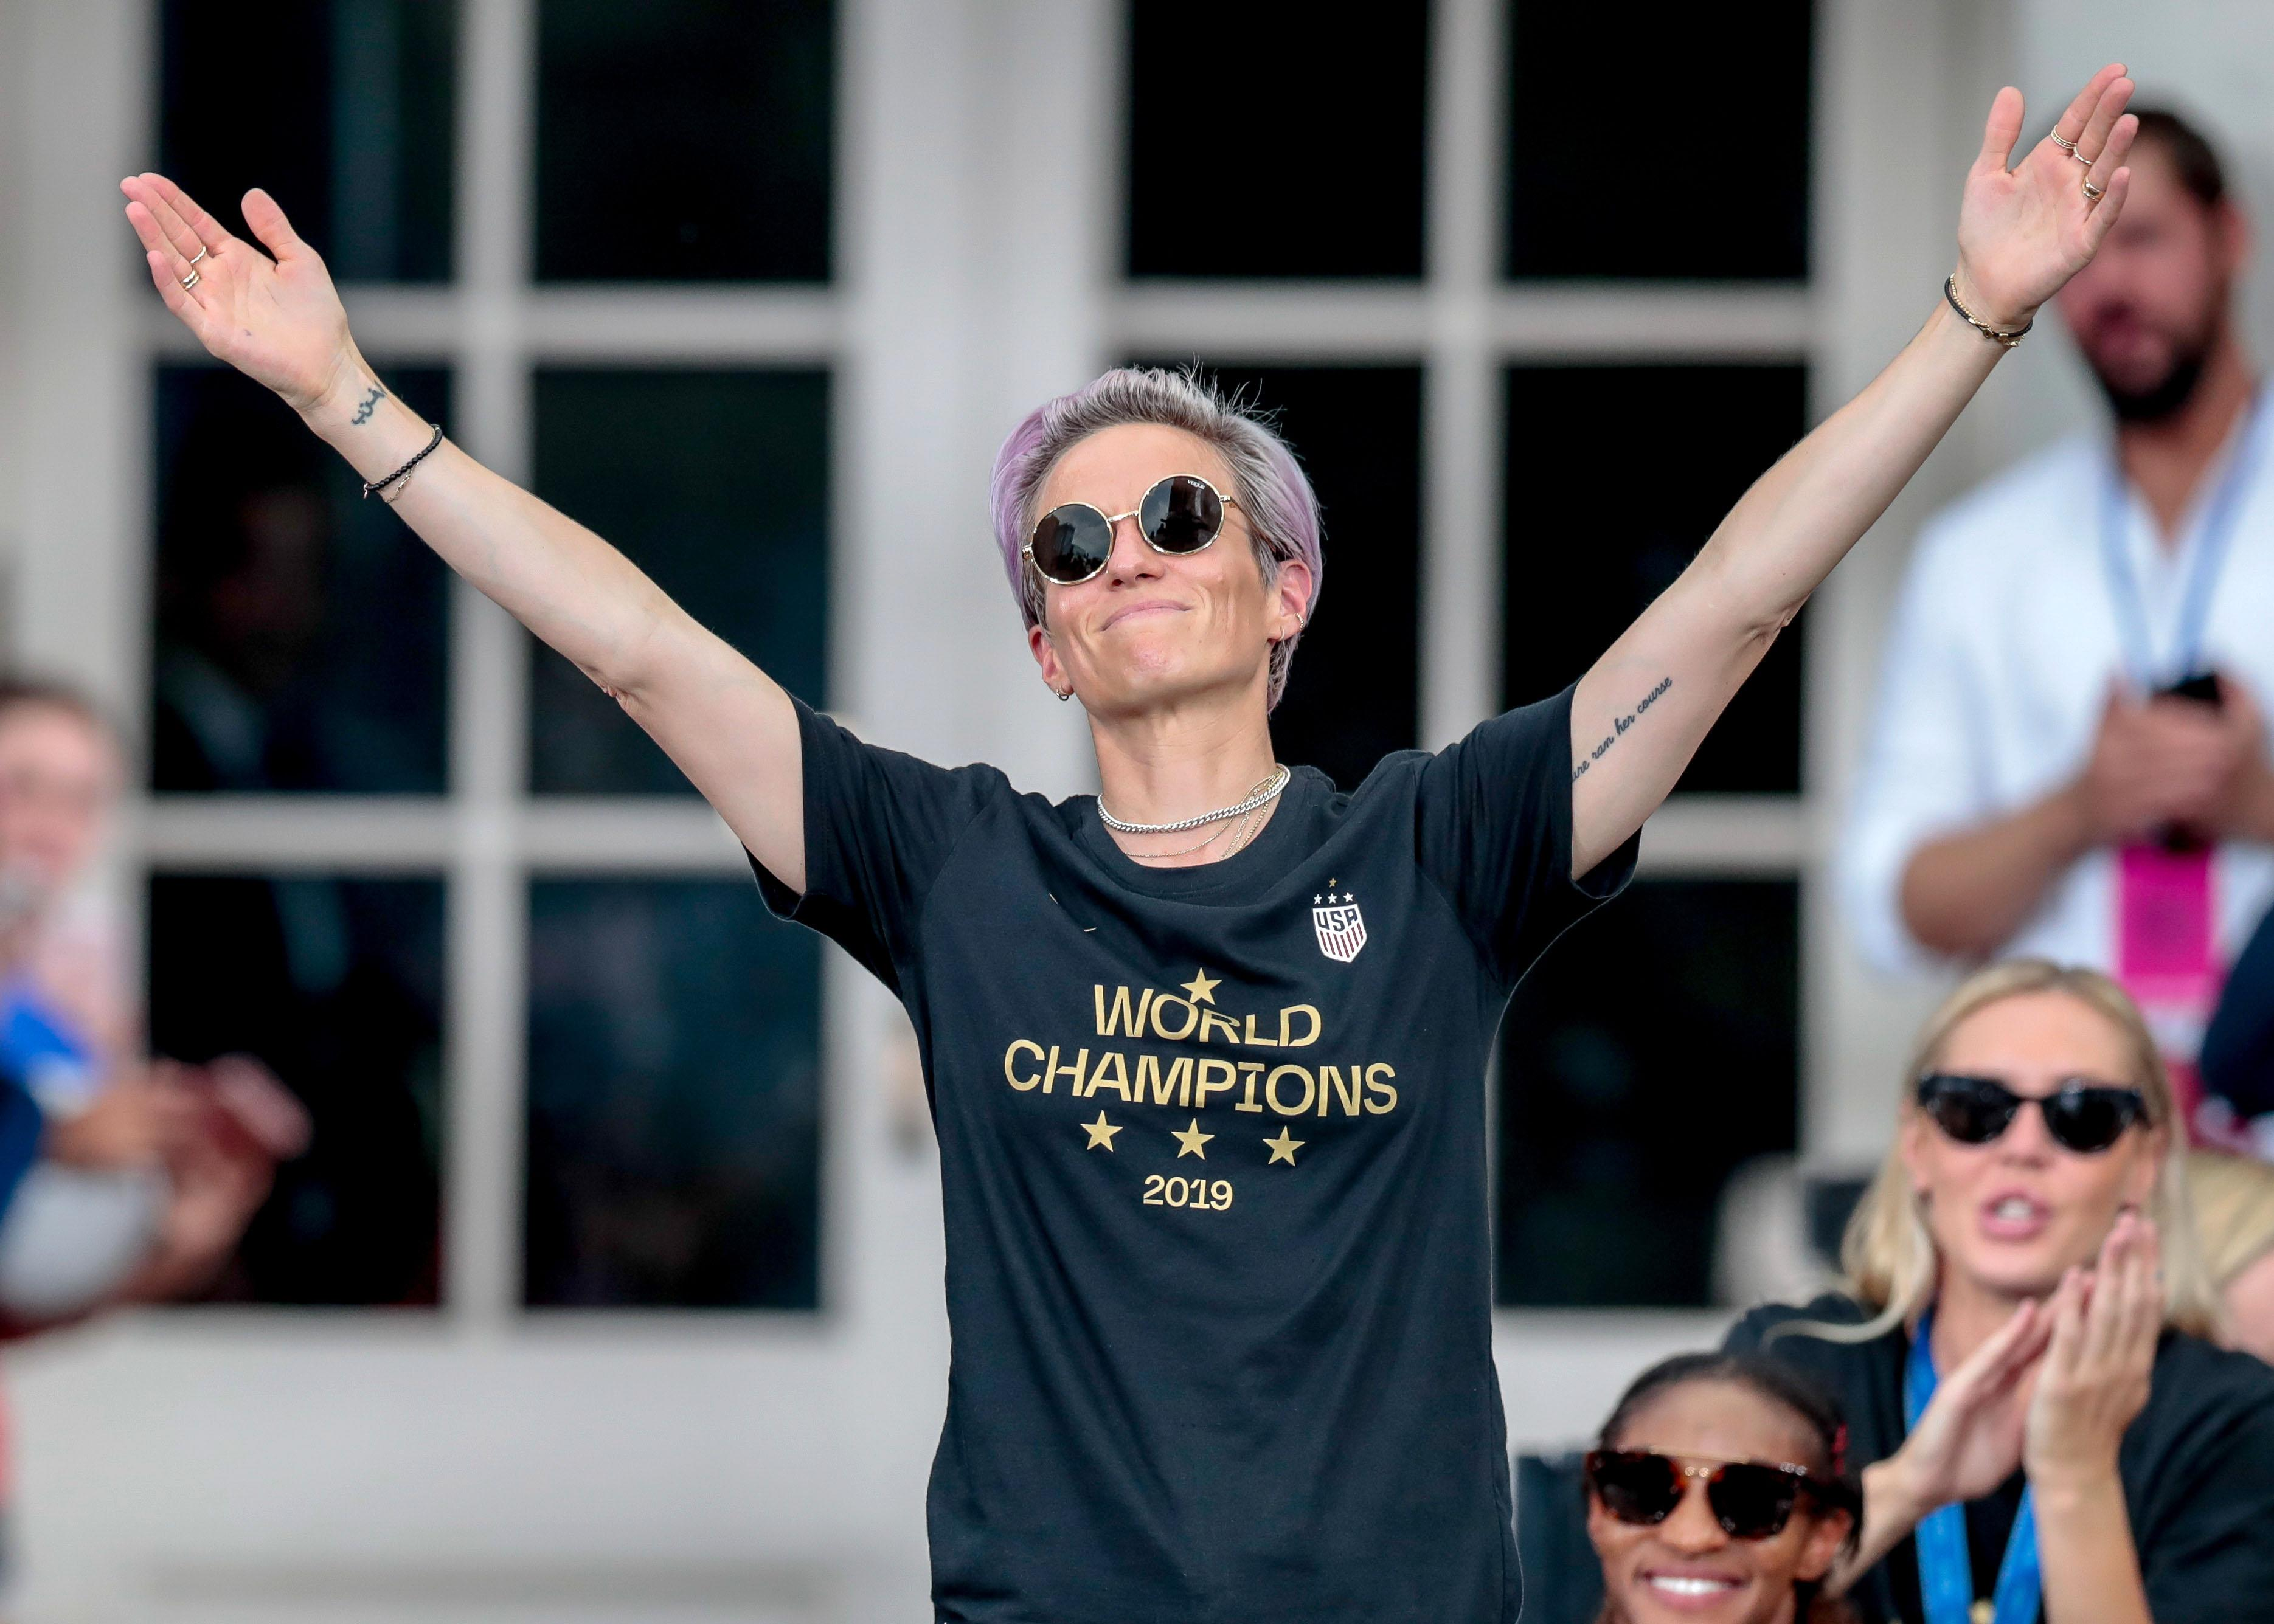 Megan Rapinoe on why equal pay talks broke down: 'You either value us equally and show that, or you don't'